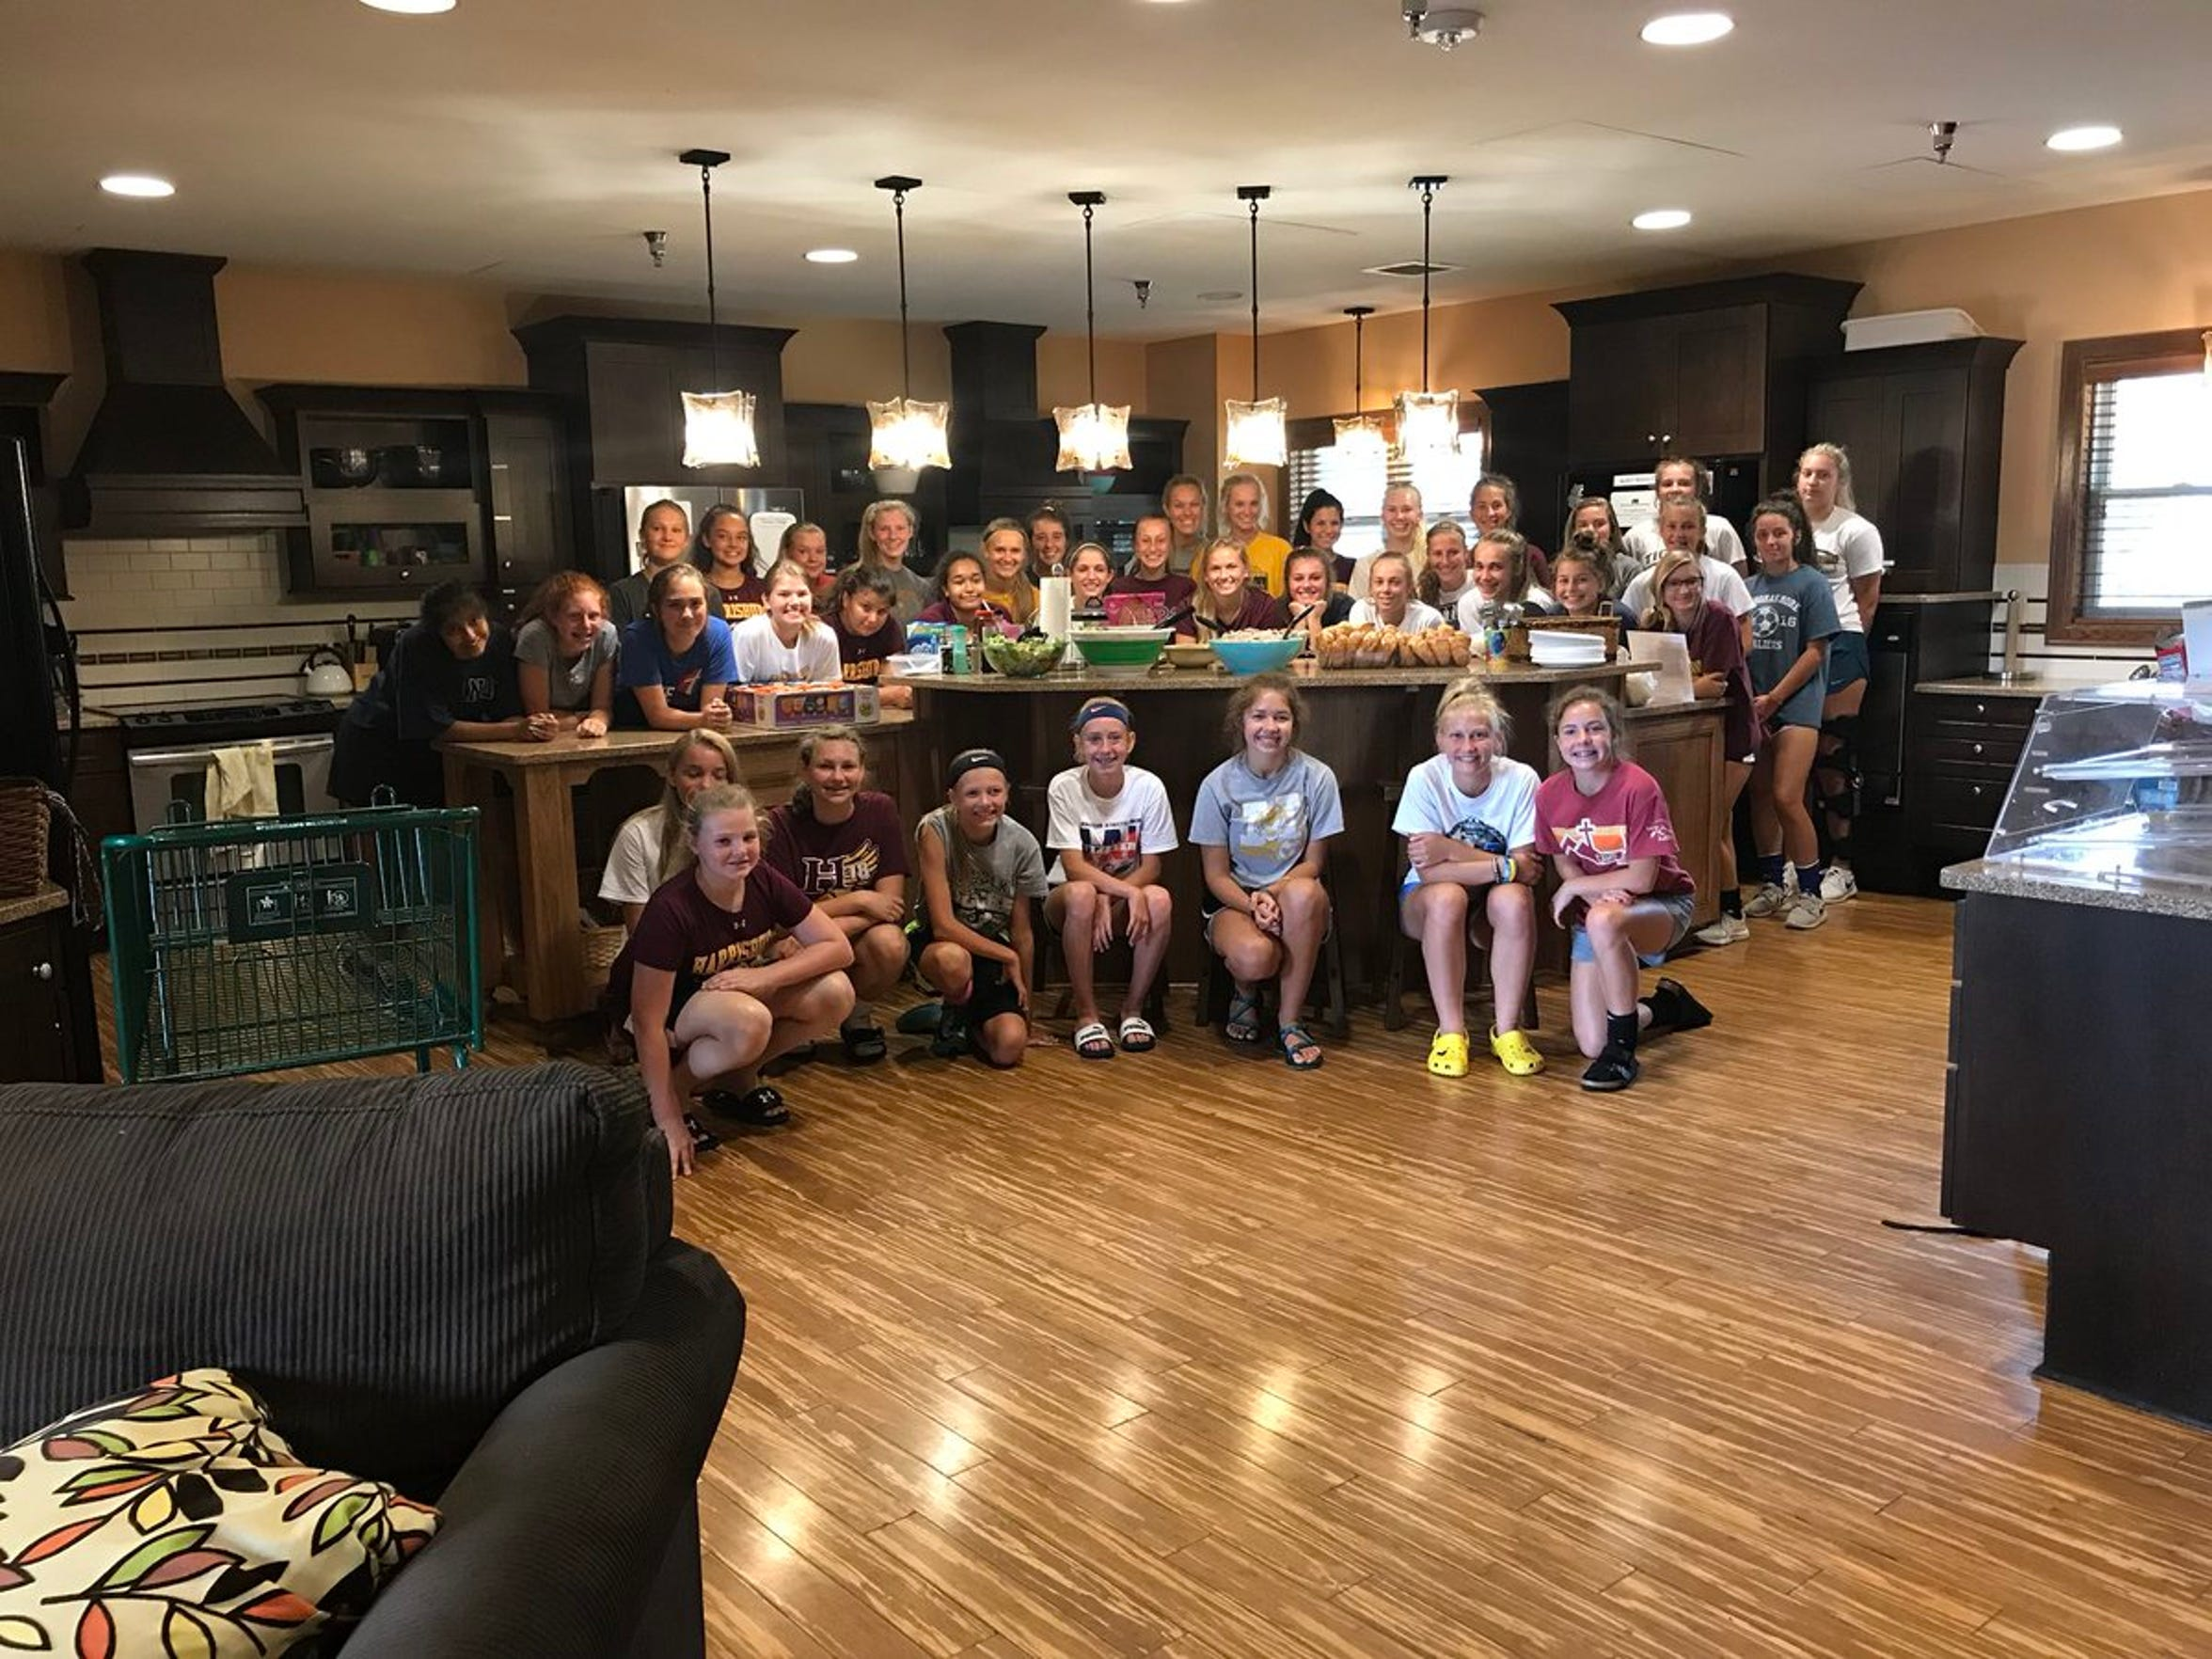 Members of the Harrisburg girls soccer team pose for a photo inside the Ronald McDonald House.